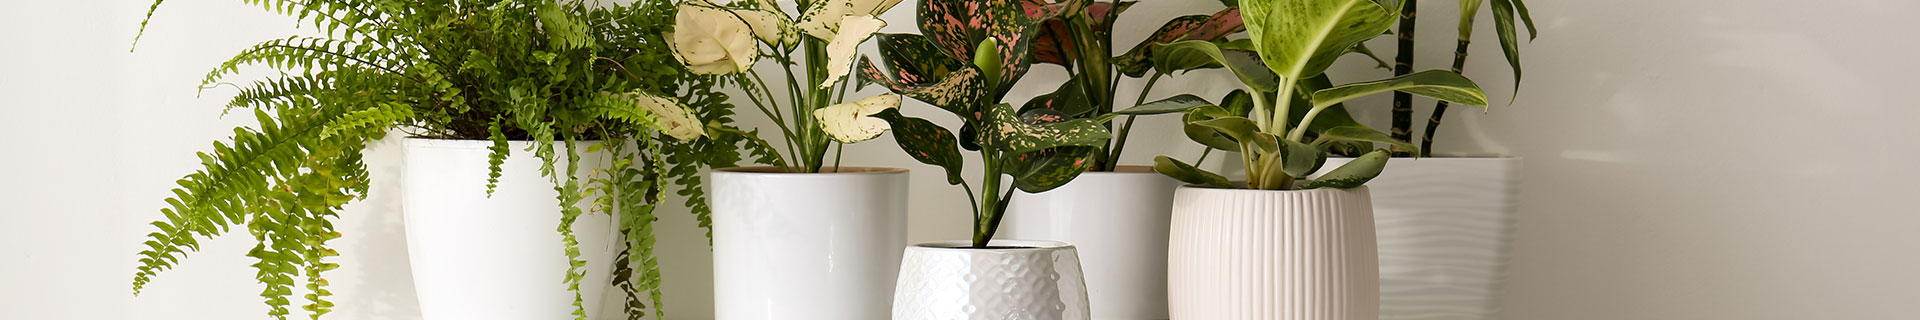 <p>Our top picks for your next house plant</p>